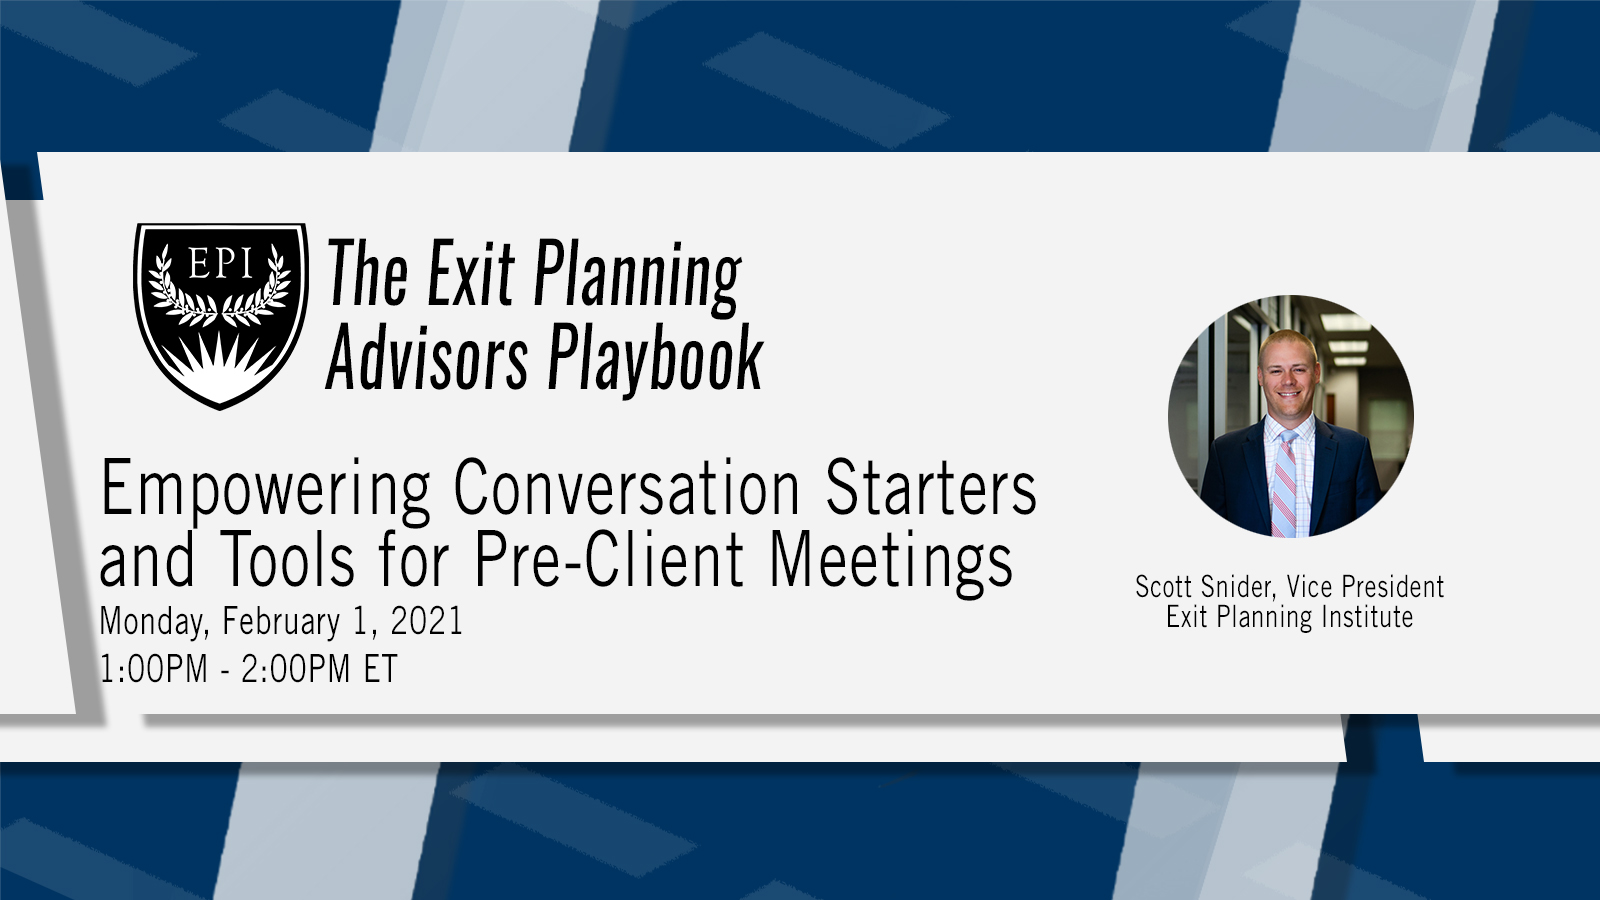 Conversations Starters and Tools for Pre-Client Meetings